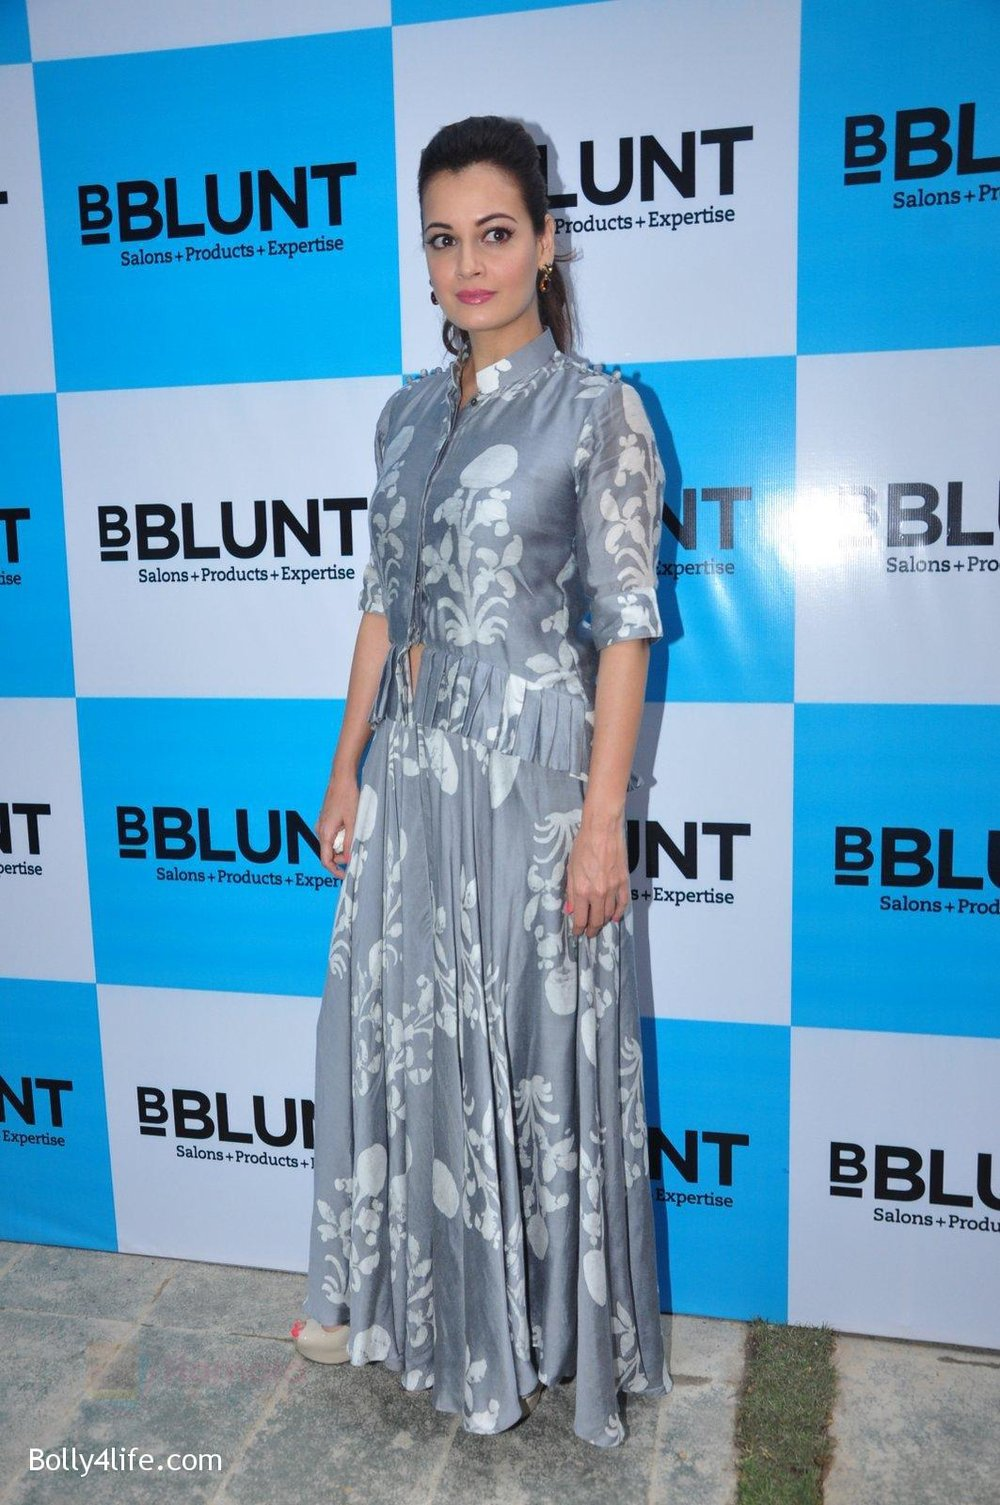 Dia-Mirza-launches-Bblunt-in-Malad-on-14th-Sept-2016-24_57da40b5f00aa.jpg